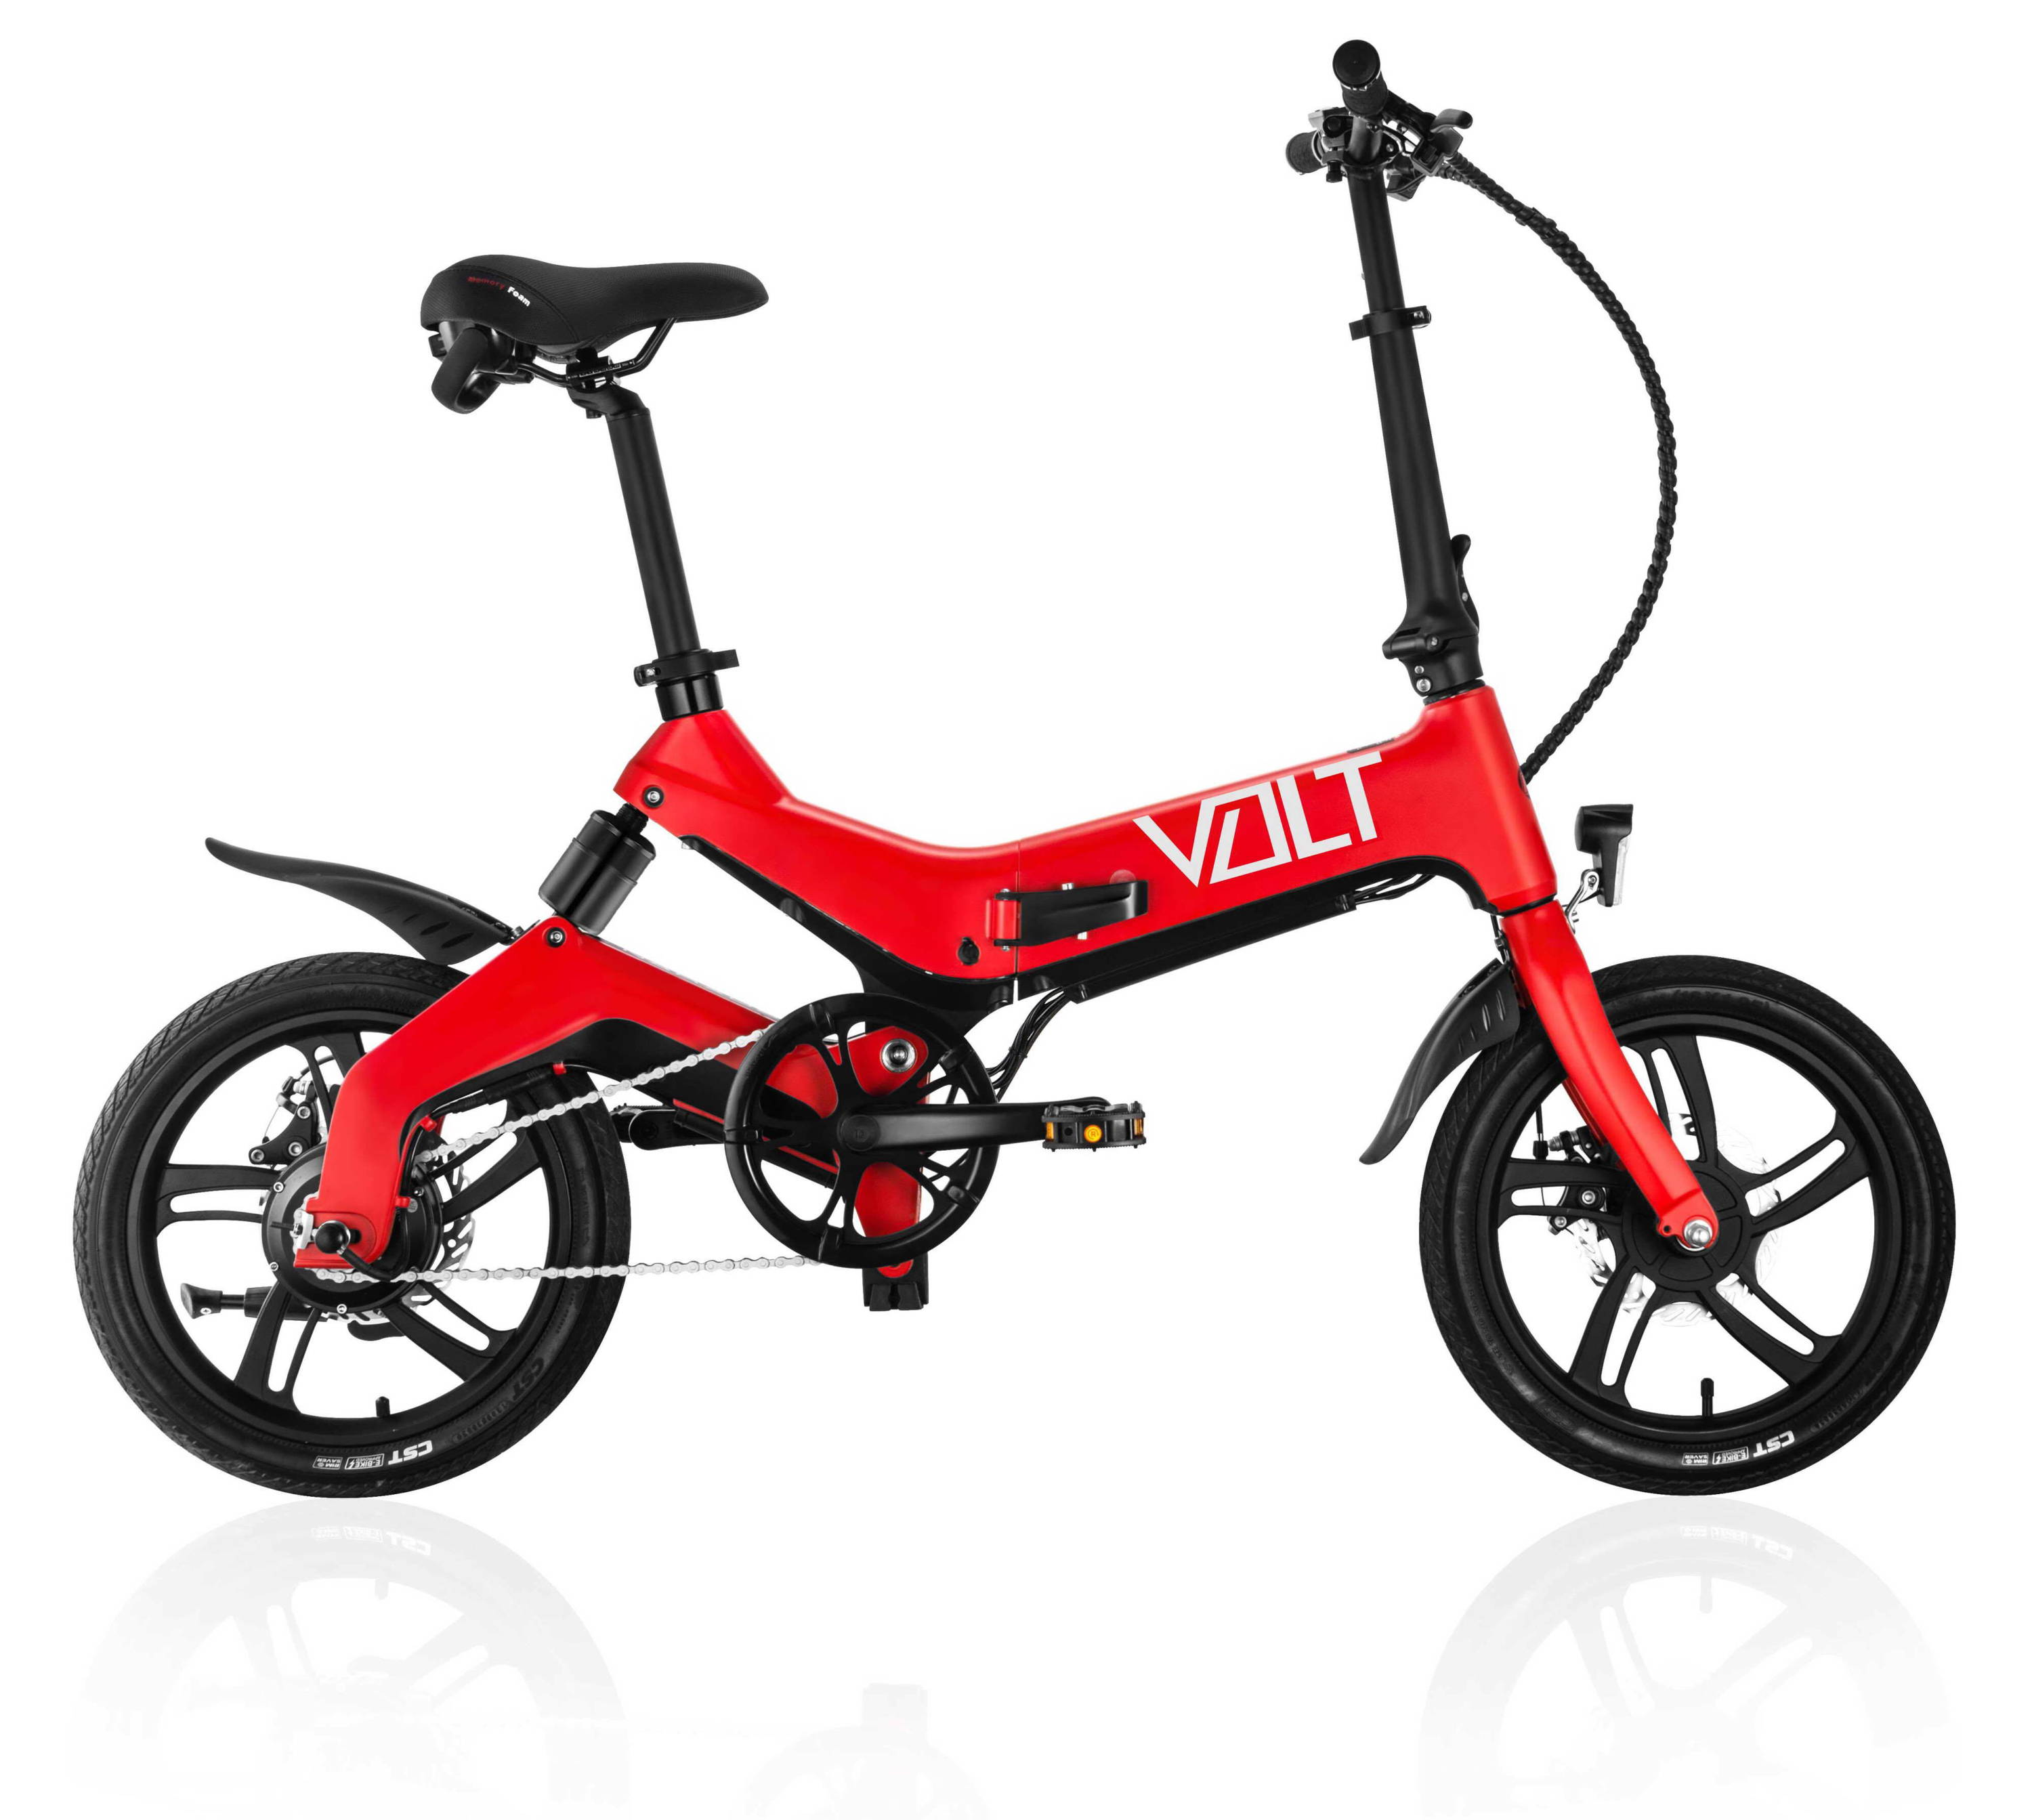 VOLT ebike in candy red colour. VOLT Mate electric bike, VOLT Mate pedalec. VOLT offers the best electric bikes for sale in Australia. The VOLT Mate has memory foam seat paddings and adjustable supports for the best bicycle riding experience. The VOLT electric cycle is equipped with specially designed mud guards or mud flaps to defend the bike frame against damage. Another reason why the Australian VOLT ebikes are the best electric bike makers in the world.